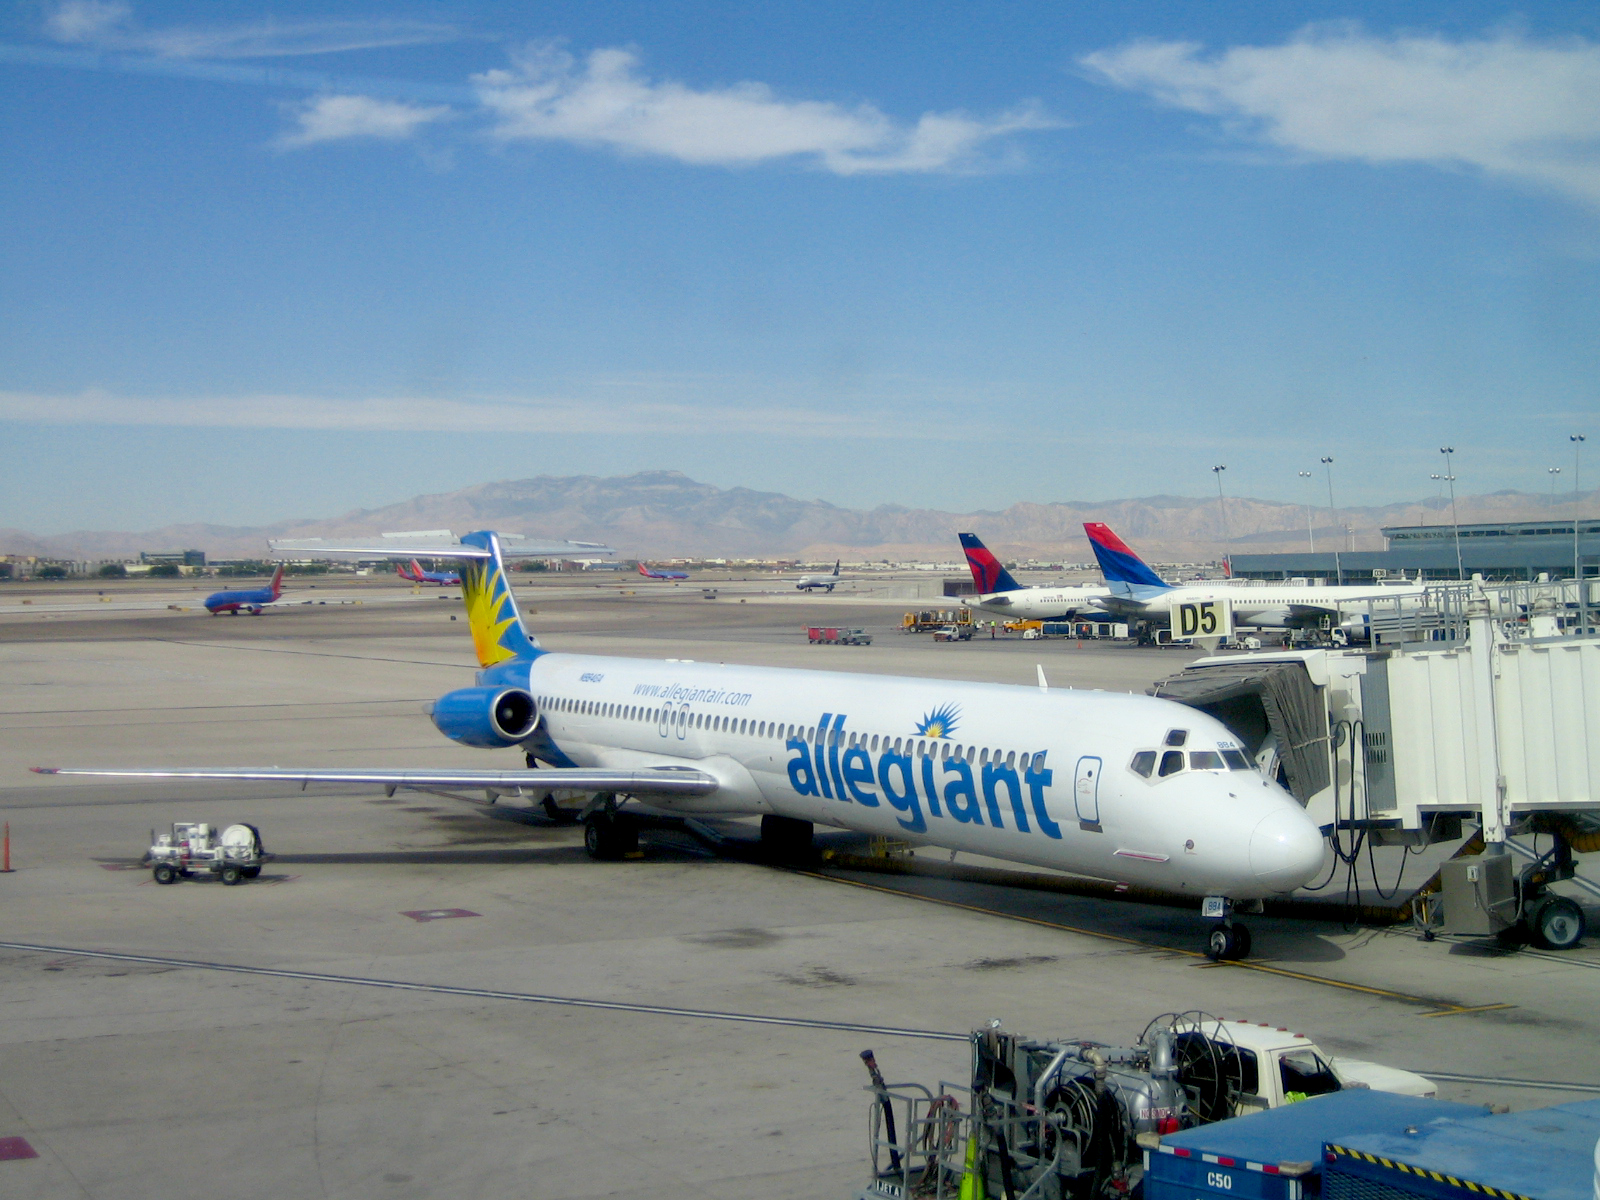 Allegiant Air. Air travel is undoubtedly the fastest and the safest way to travel which opens up a market for several companies to become your preferred airlines.